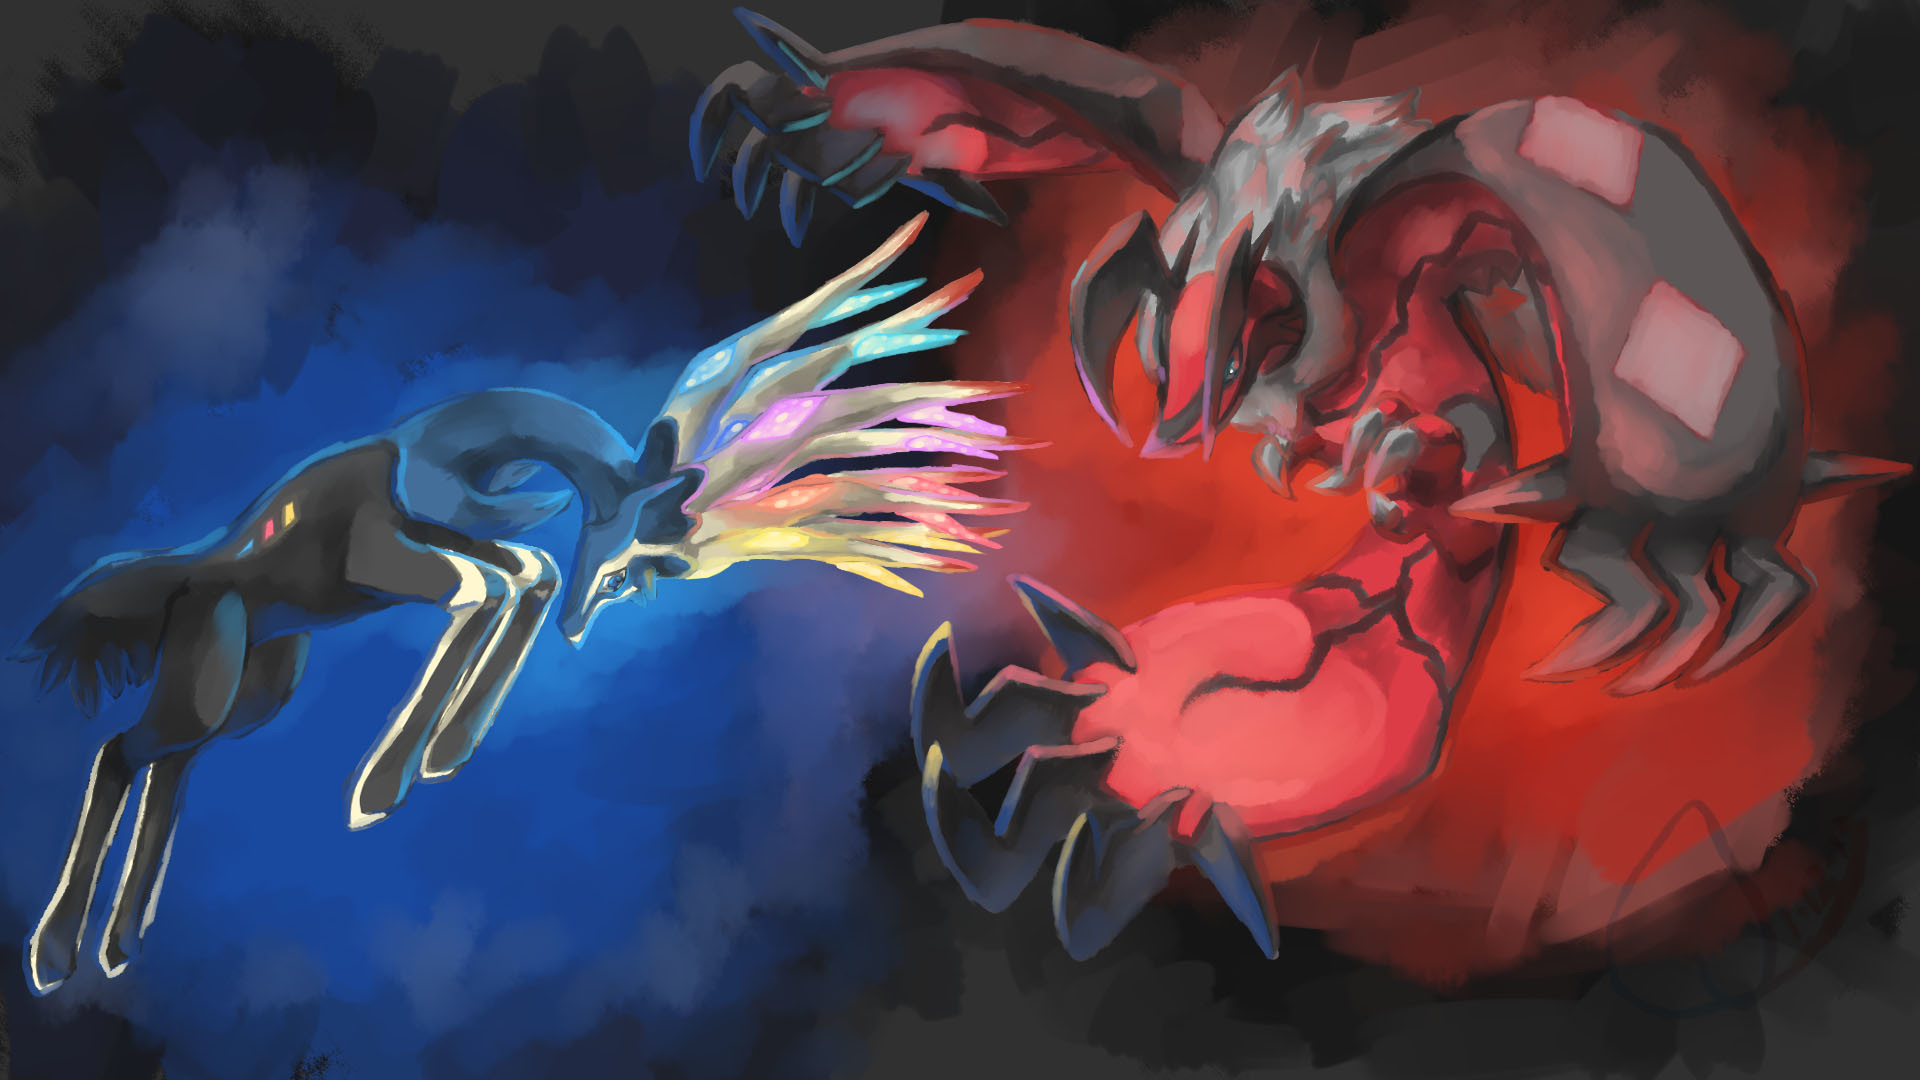 1920x1080 Yveltal and Xerneas battle